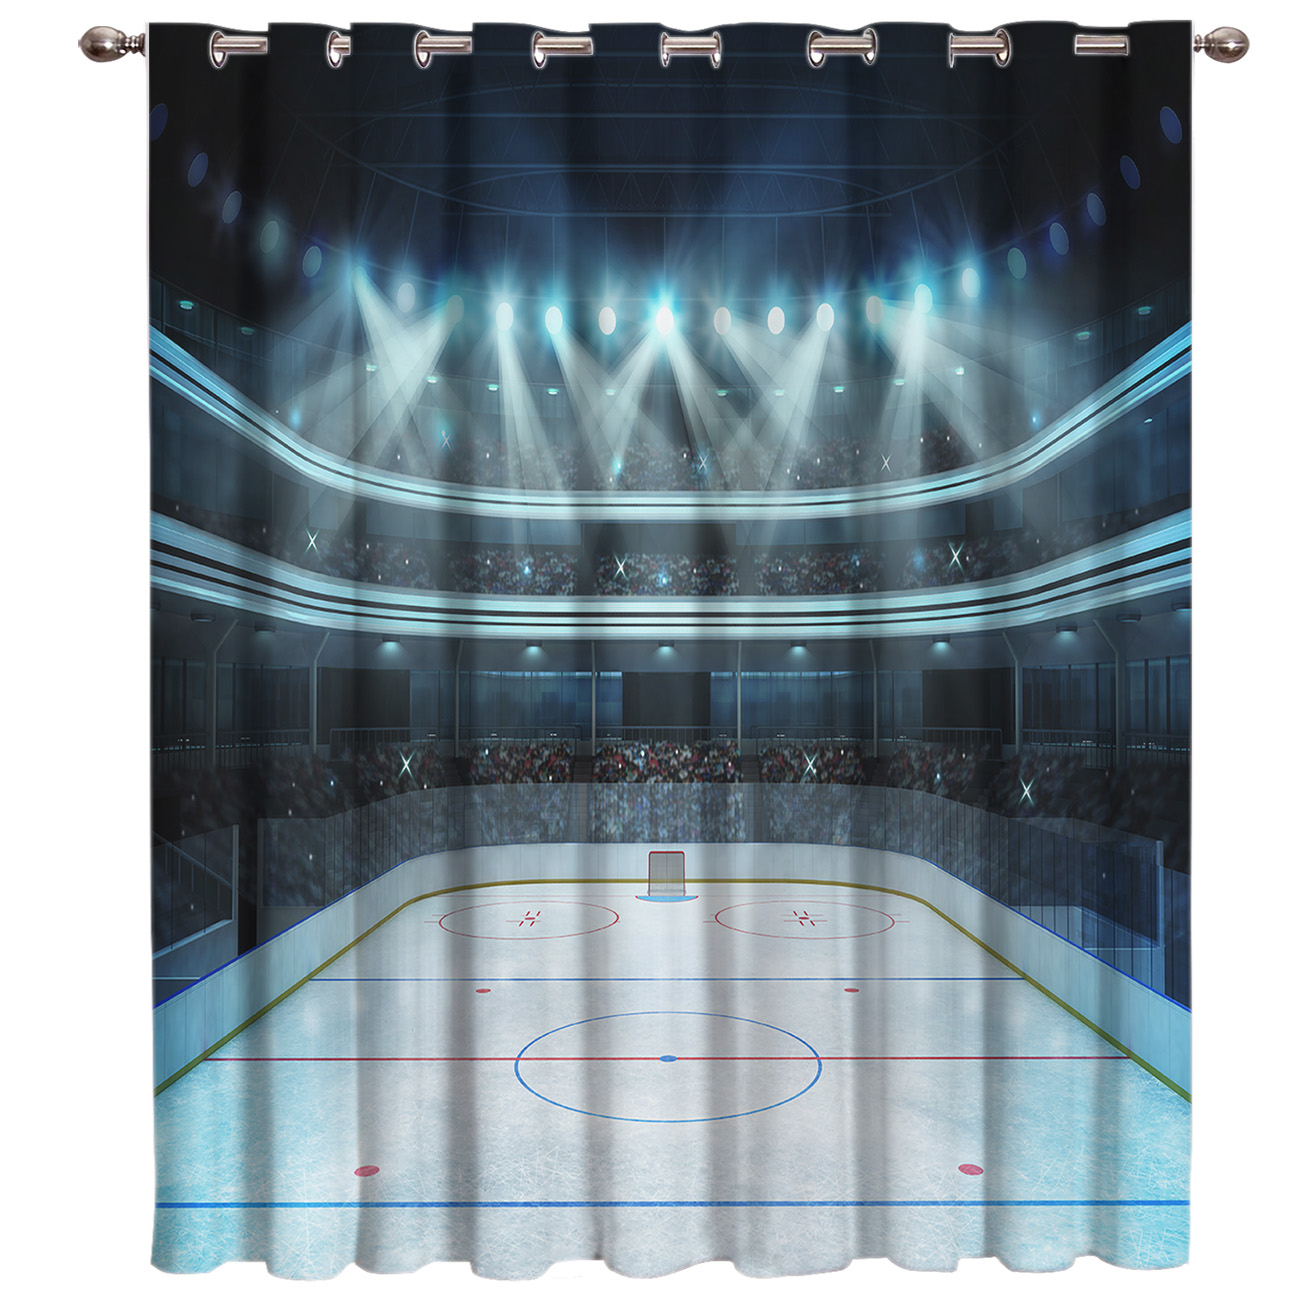 Arena Ice Hockey Room Curtains Large Window Living Room Curtains Kitchen Fabric Floral Drapes Decor Kids Sheer Curtains Girls